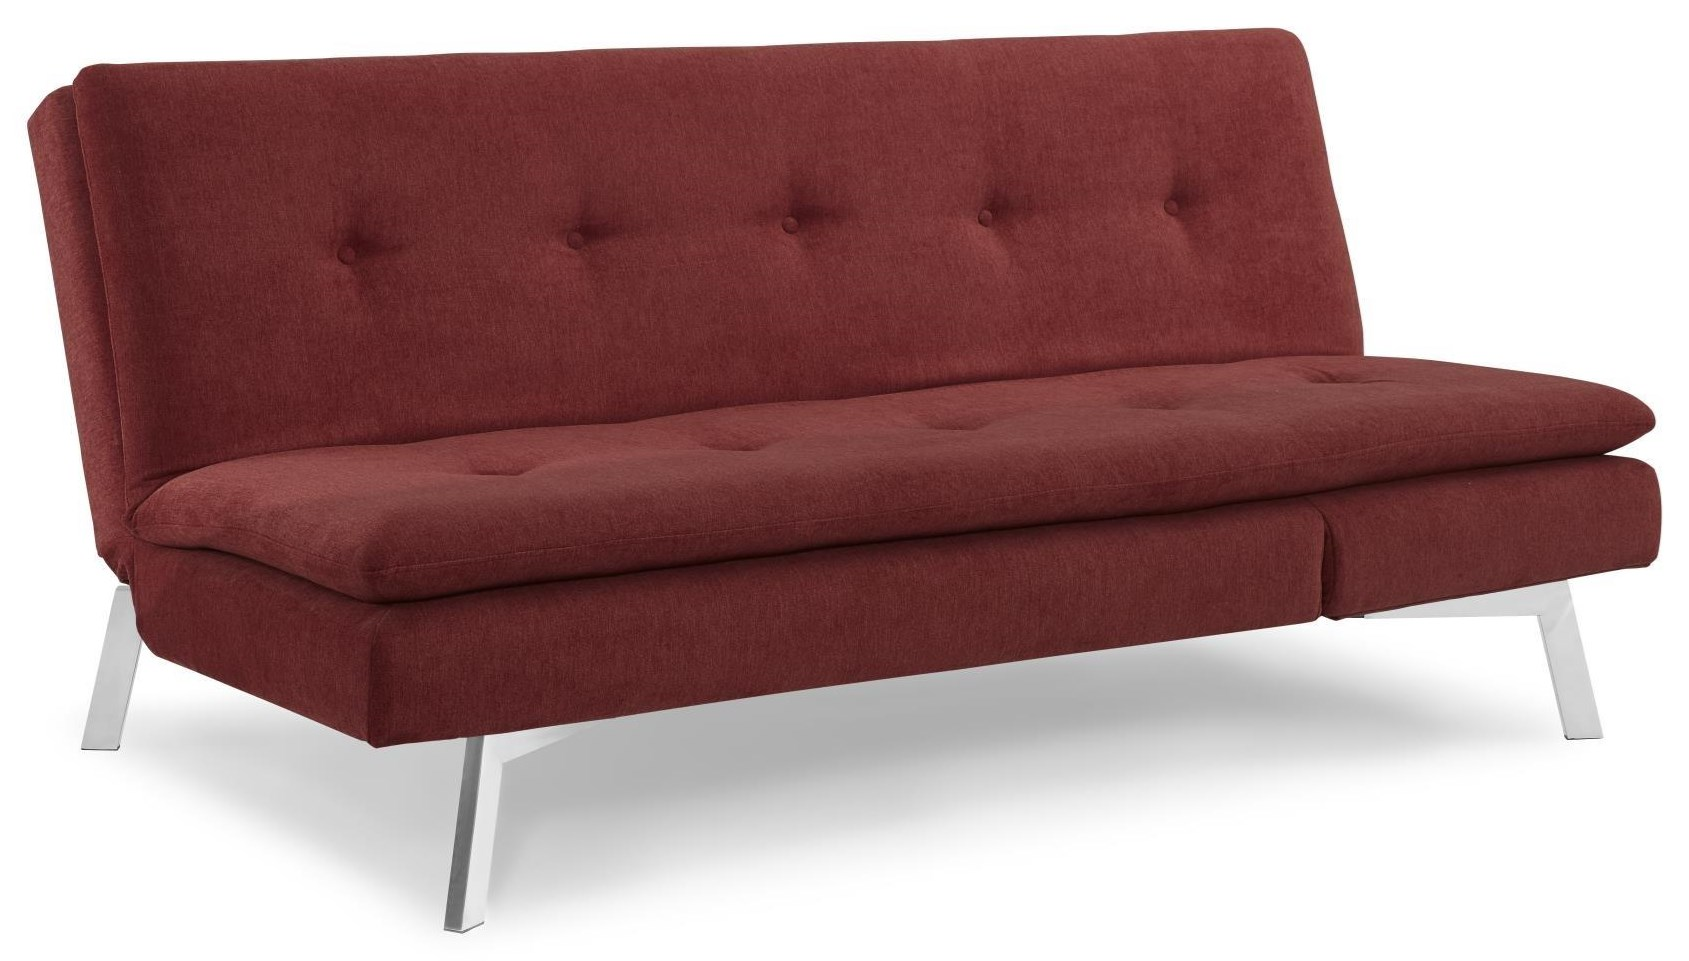 Chicago Full Split Back Sofa Bed by Sealy Sofa Convertibles at HomeWorld Furniture